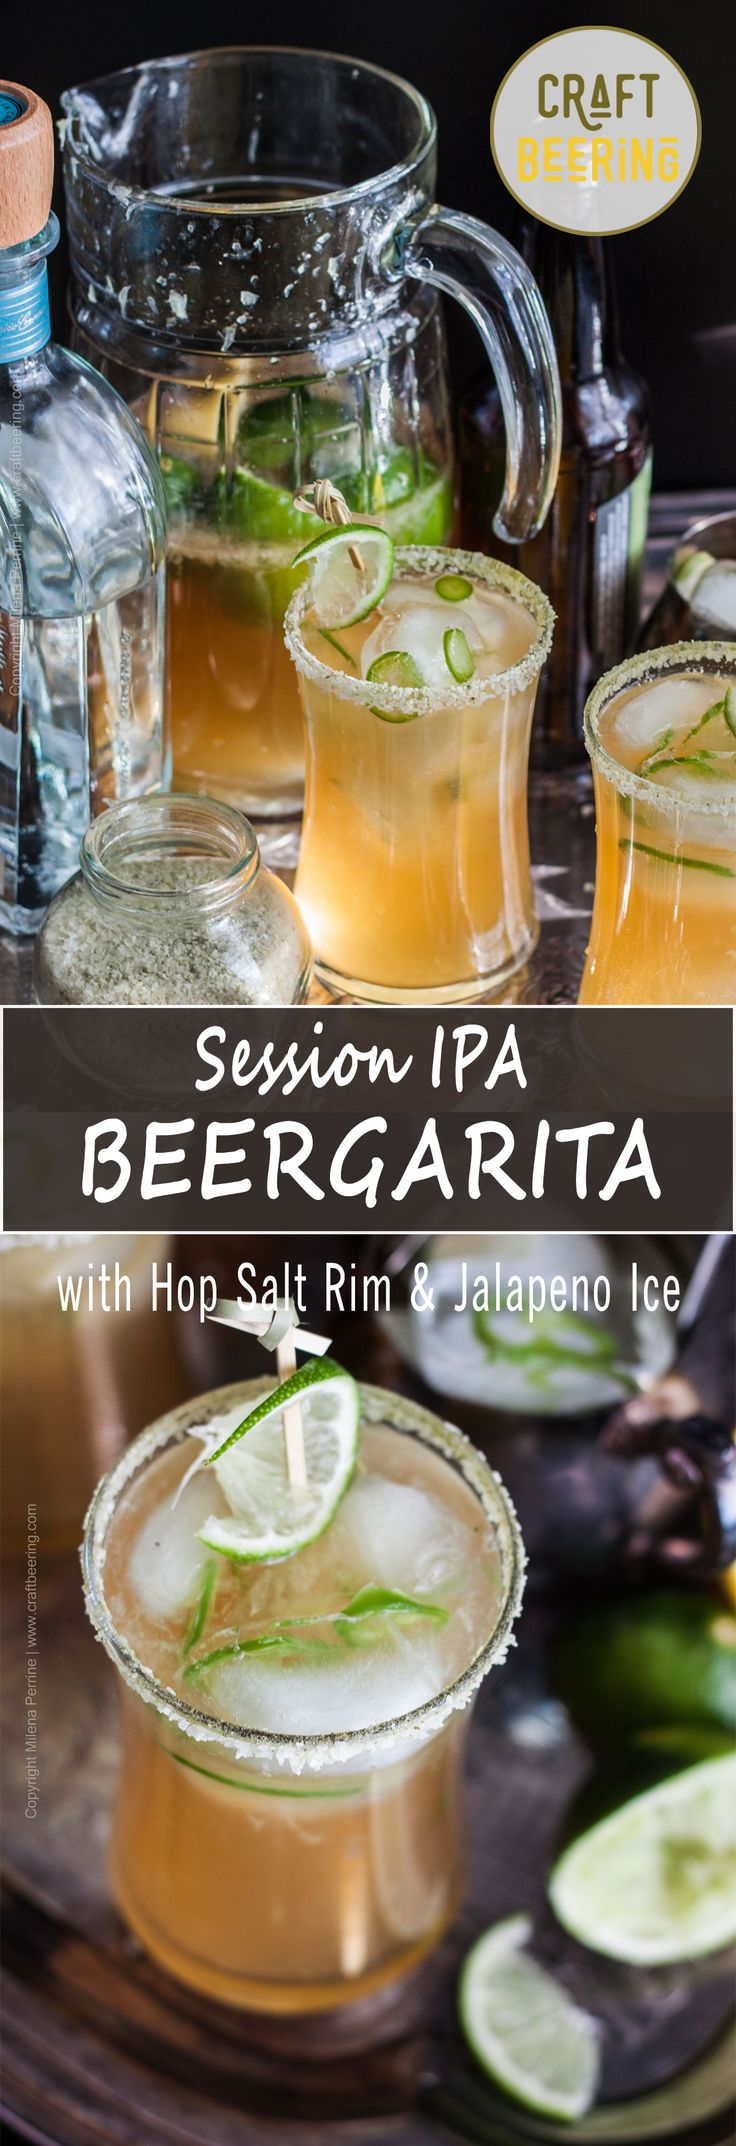 Among beer cocktails this Beergarita with Hop Salt Rim and Jalapeno Ice Cubes is a star. A Session IPA margarita with a twist:)